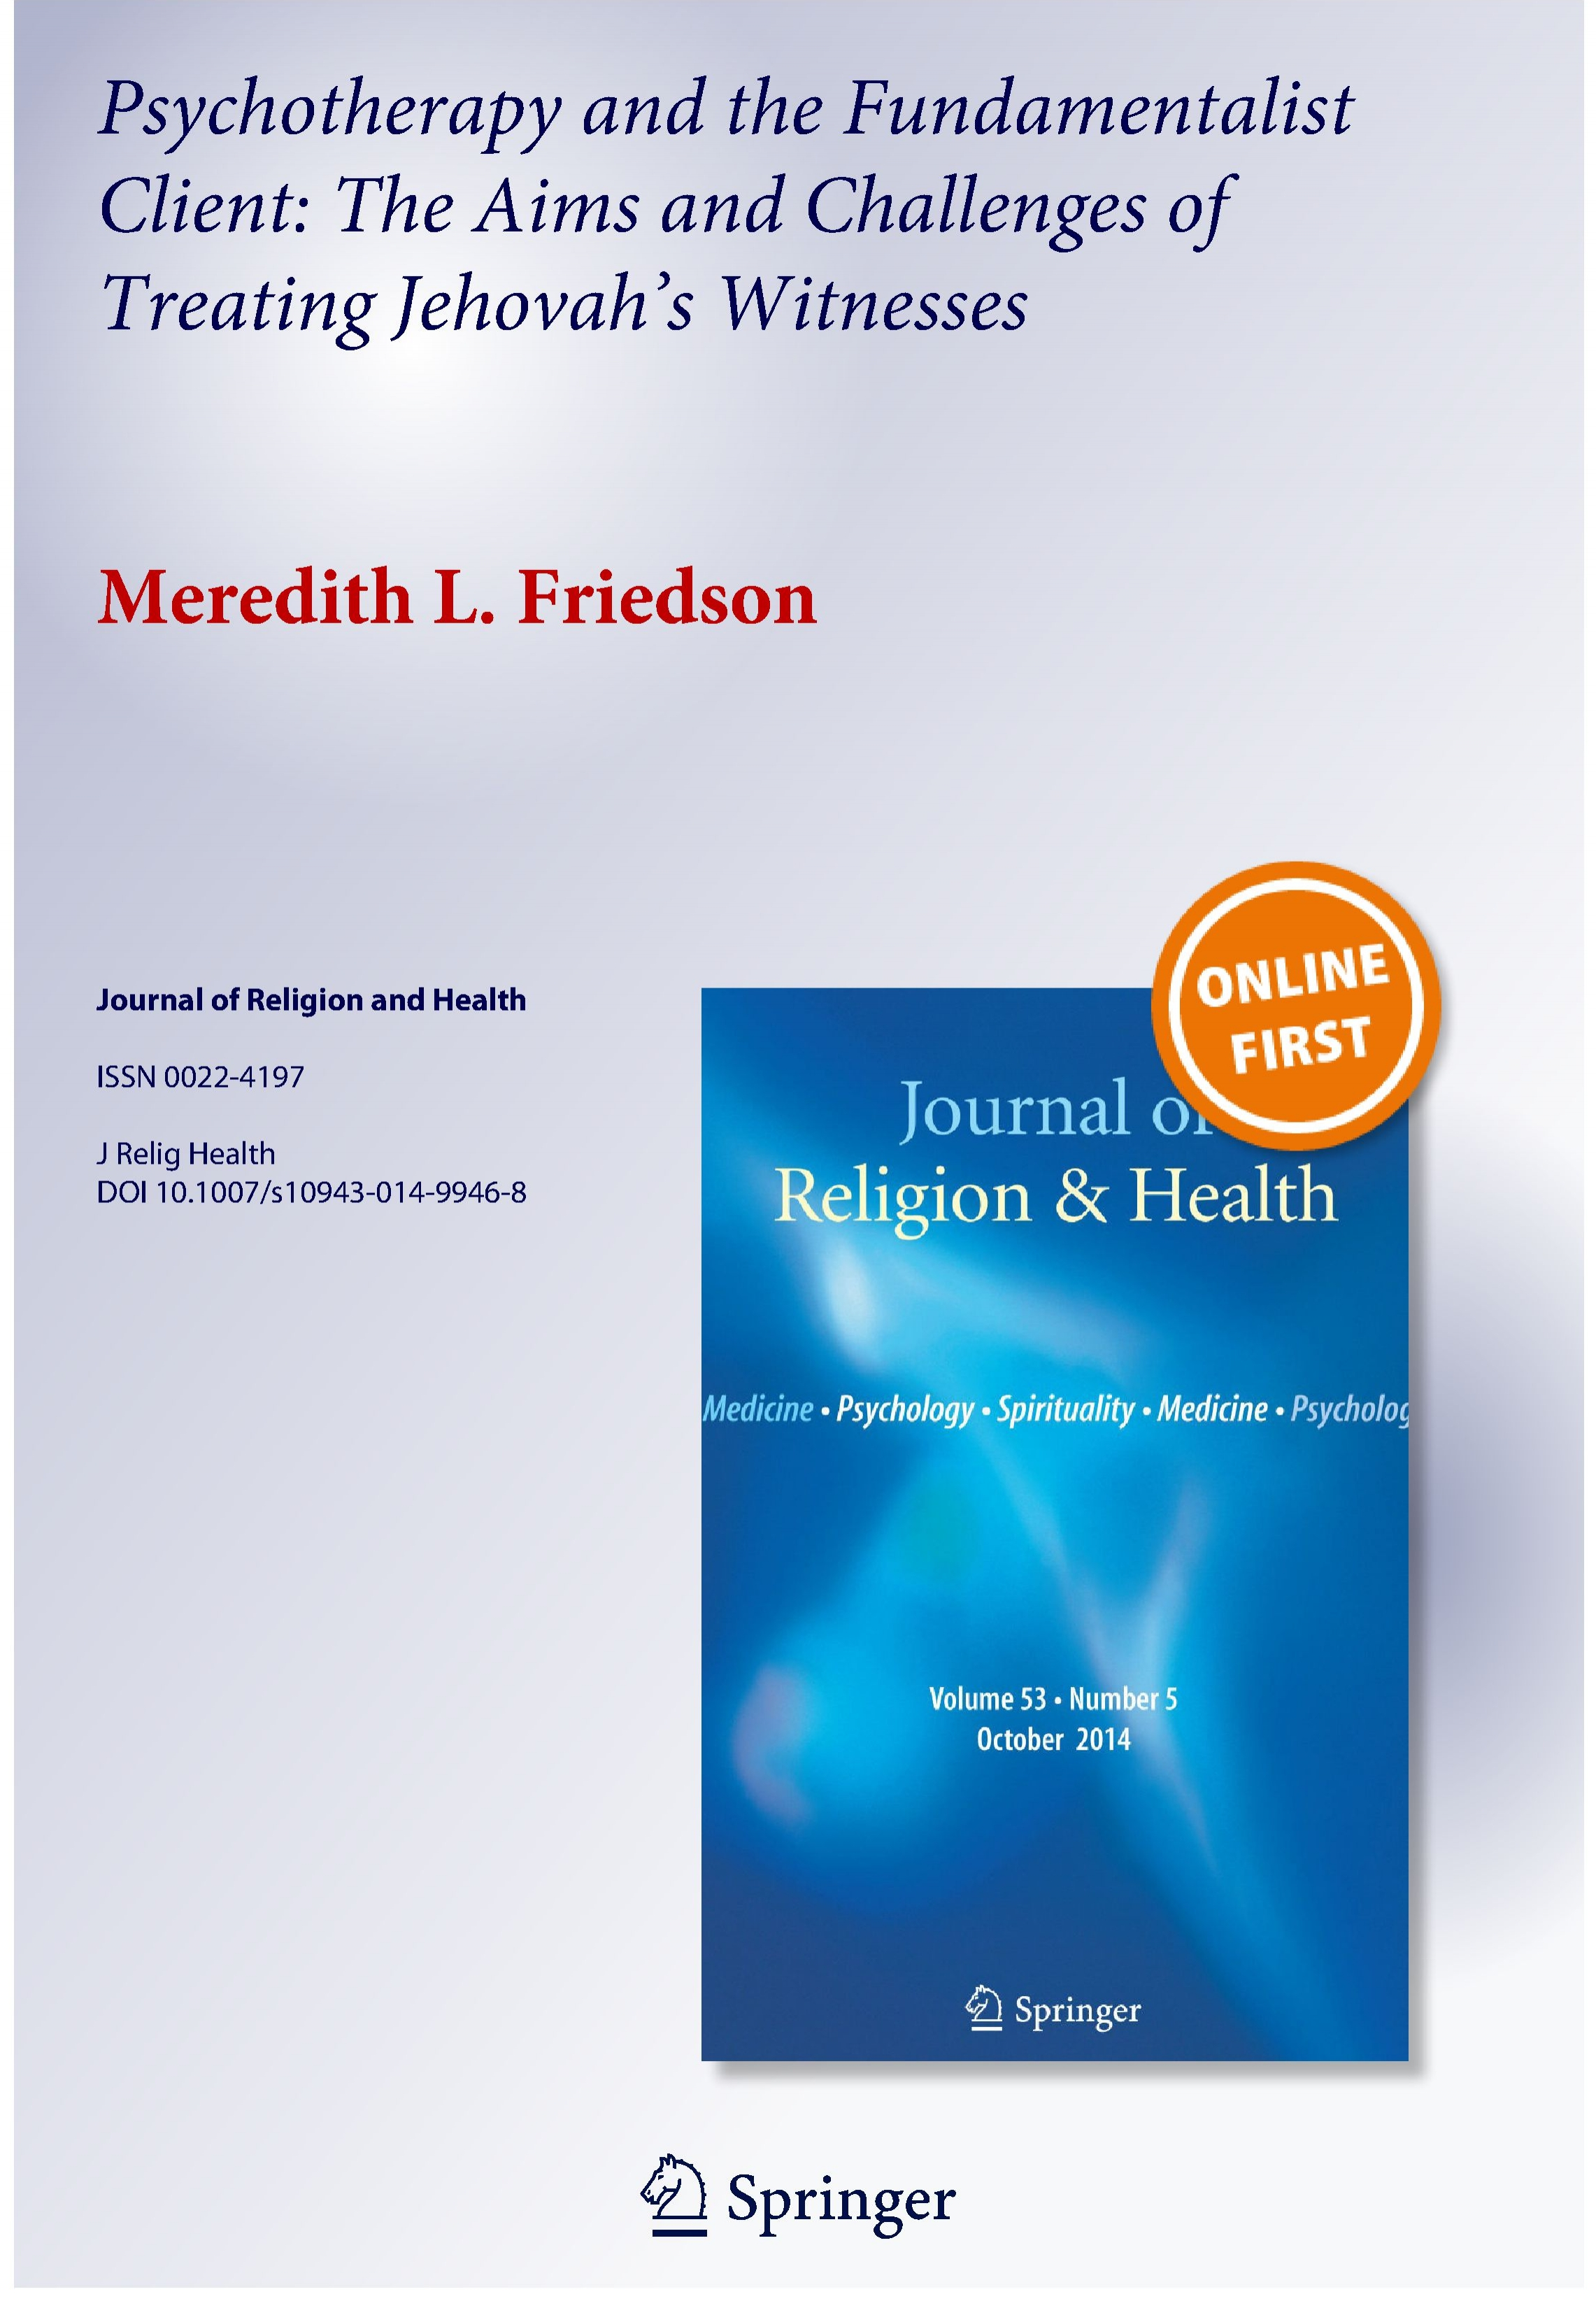 Psychotherapy and the Fundamentalist Client - The Aims and Challenges of Treating Jehovah's Witnesses_Friedson, M._2014_COVER.jpg